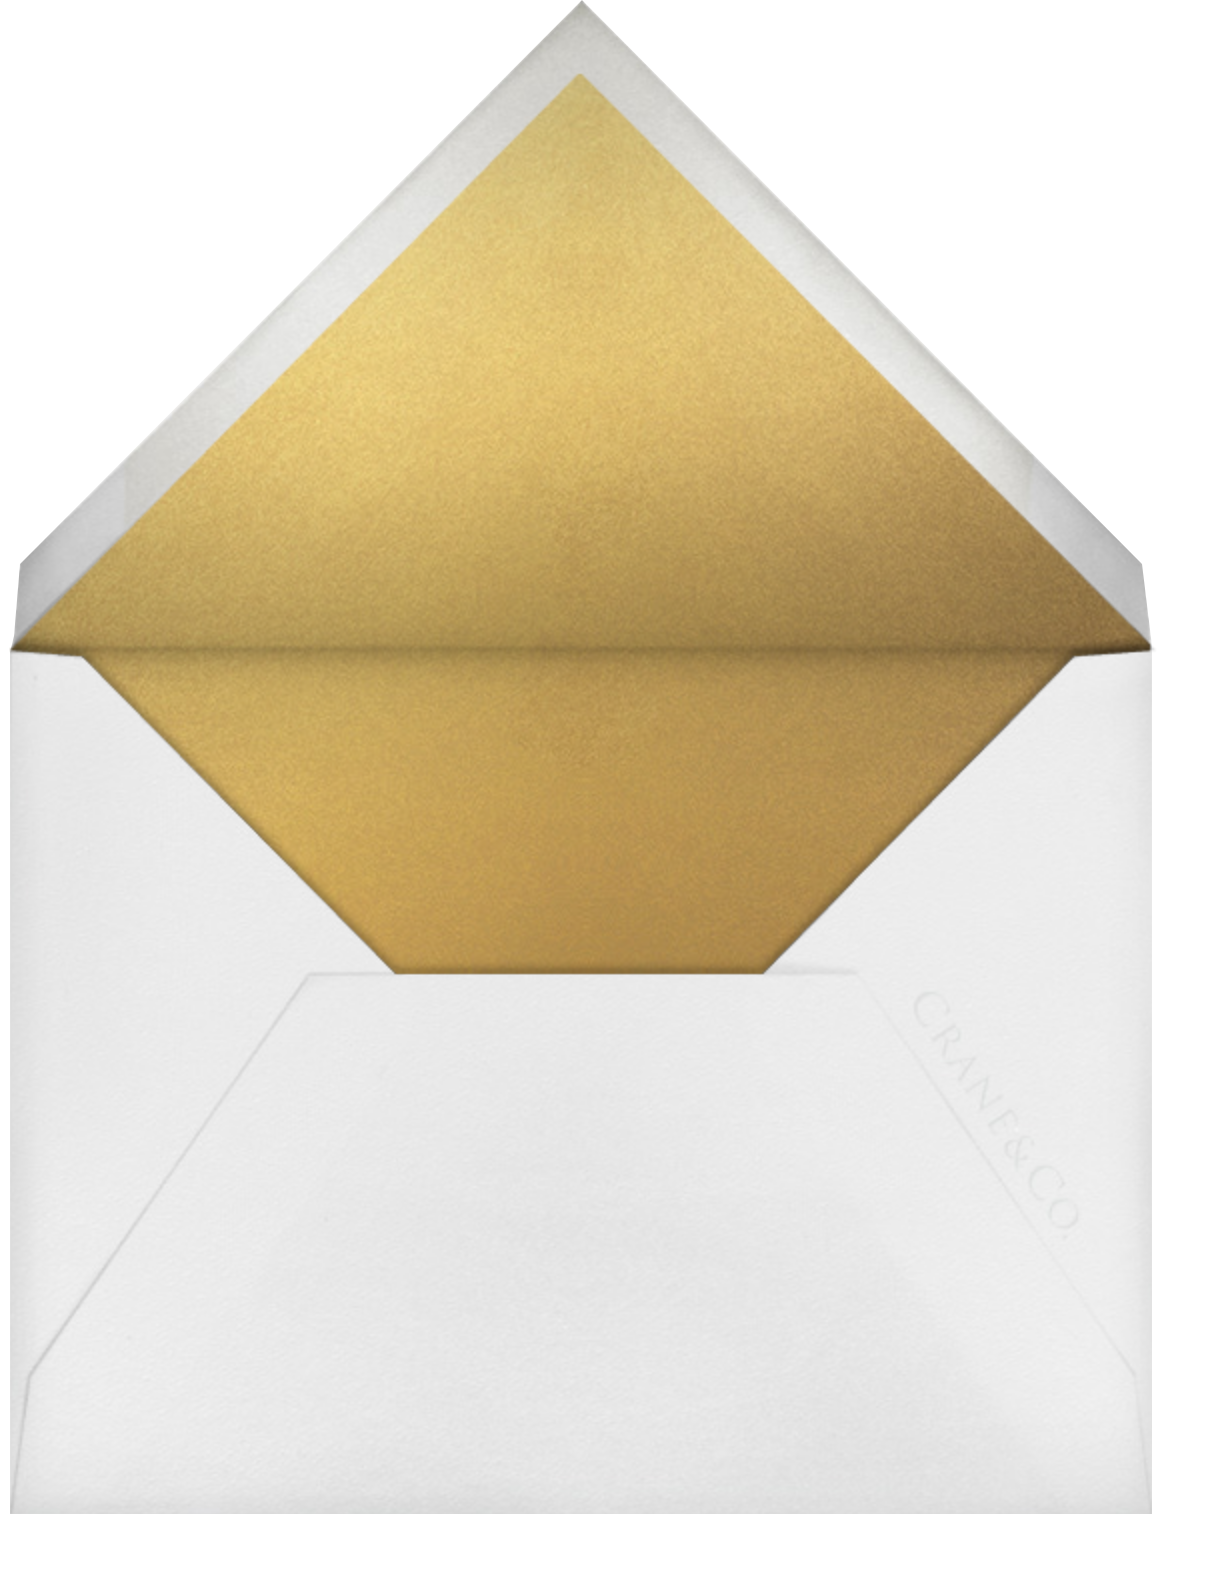 Peace in Our Time - Paperless Post - General - envelope back